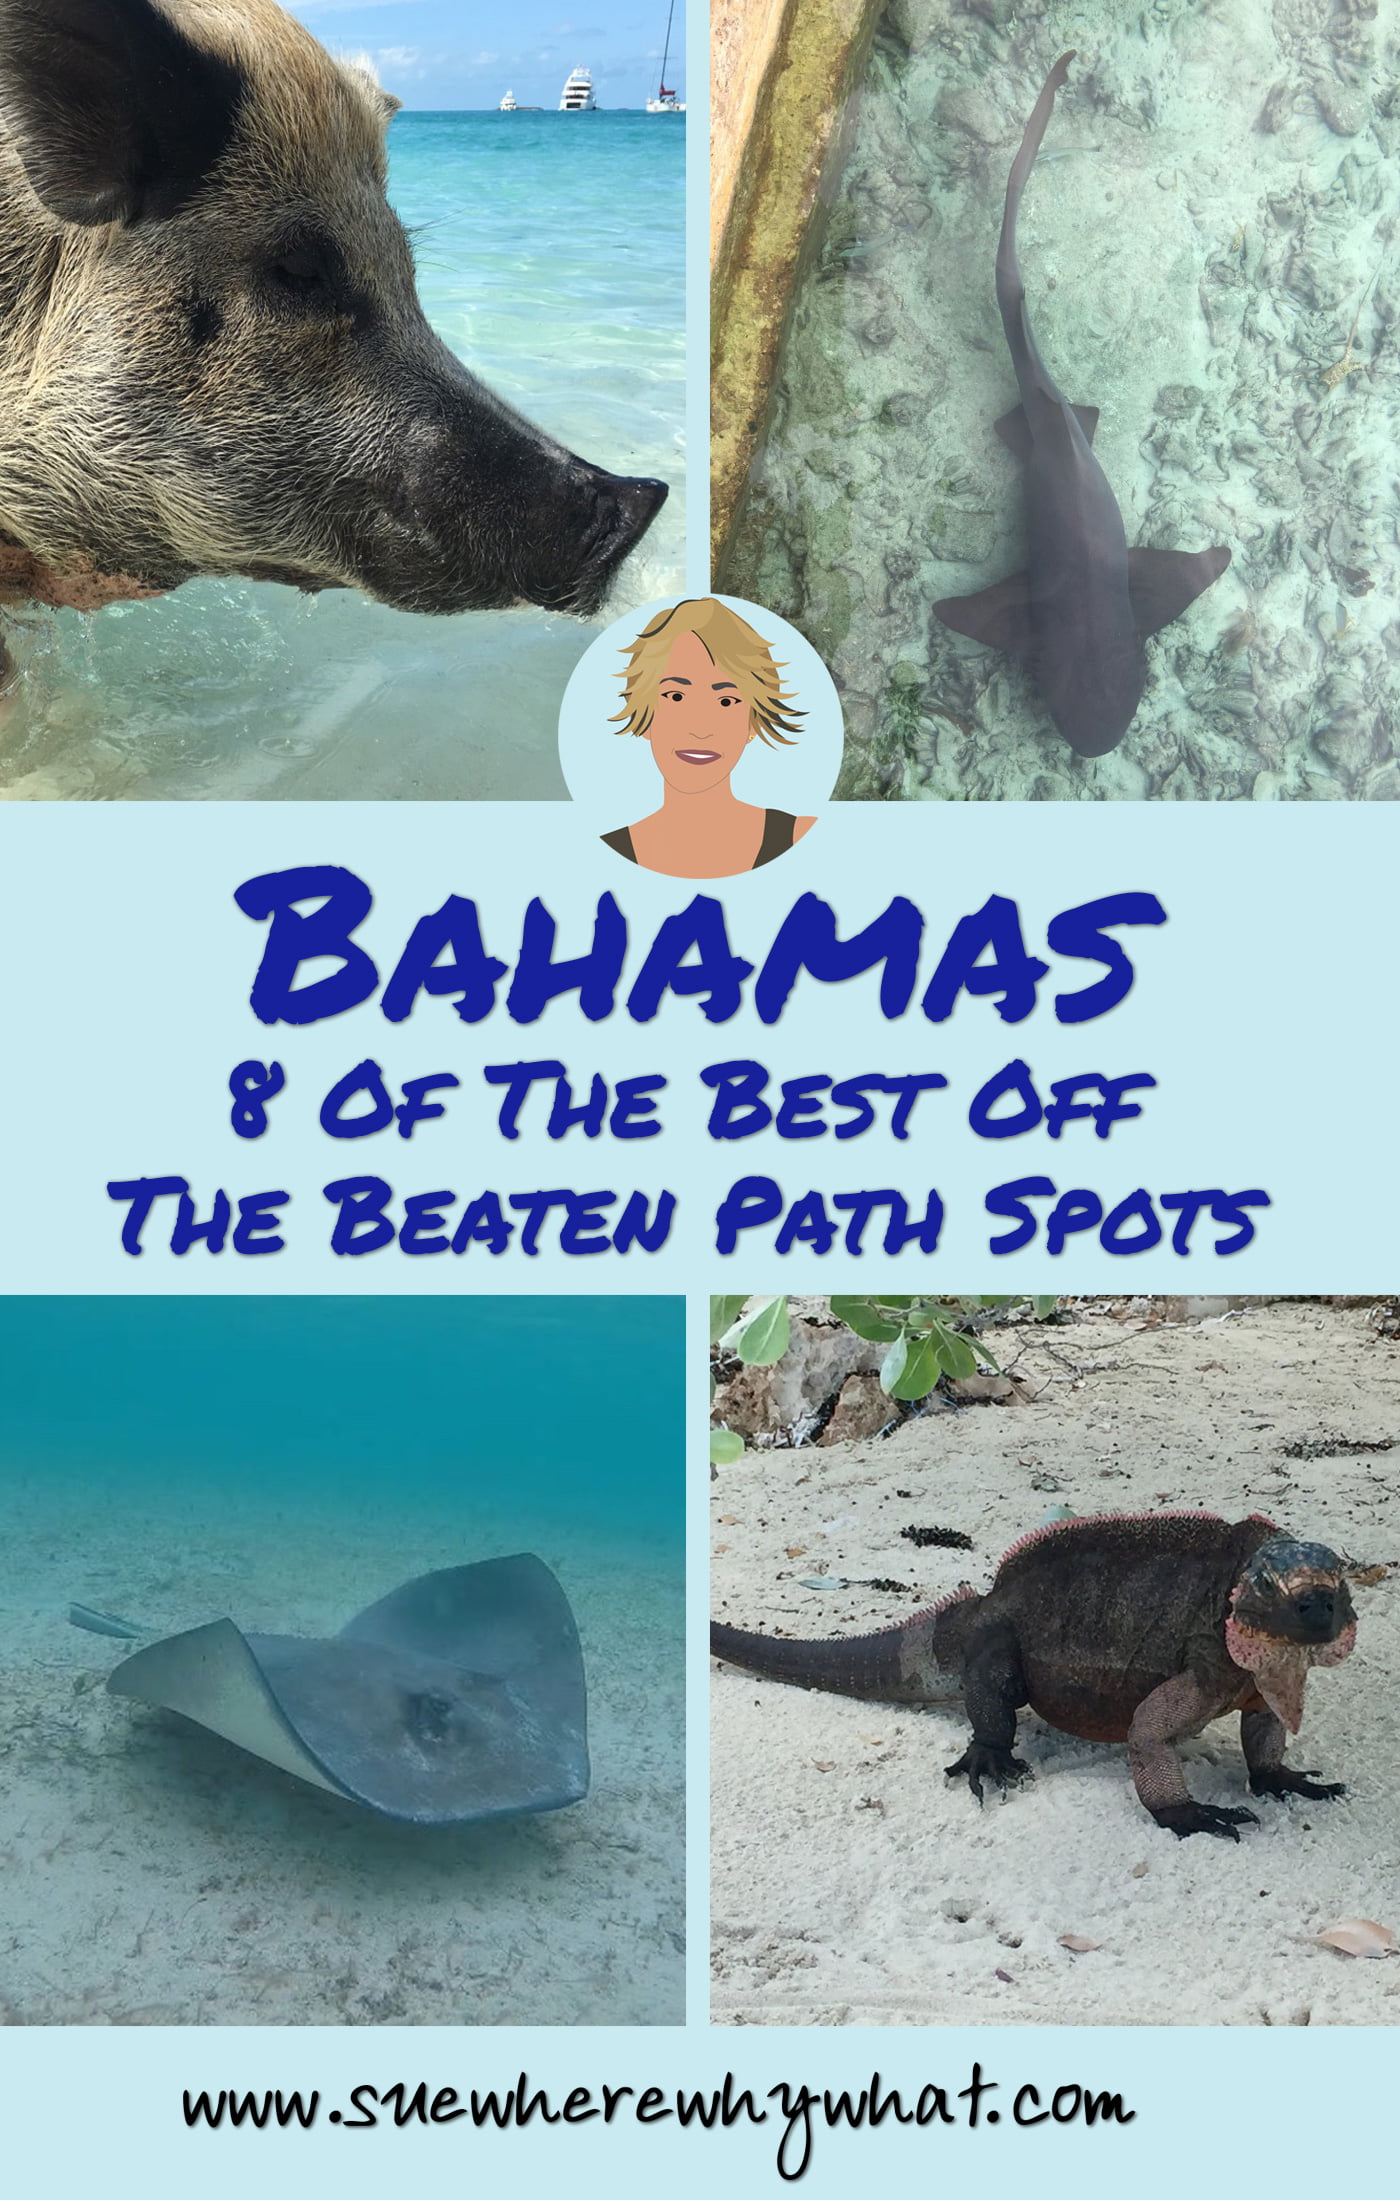 8 Of The Best Off The Beaten Path Spots In The Bahamas including a plane wreck, an island full of iguanas, stroking sharks, feeding turtles & sting rays, swimming with pigs & snorkelling in the cave lagoon paradise that is James Bonds 'Thunderball Grotto'.